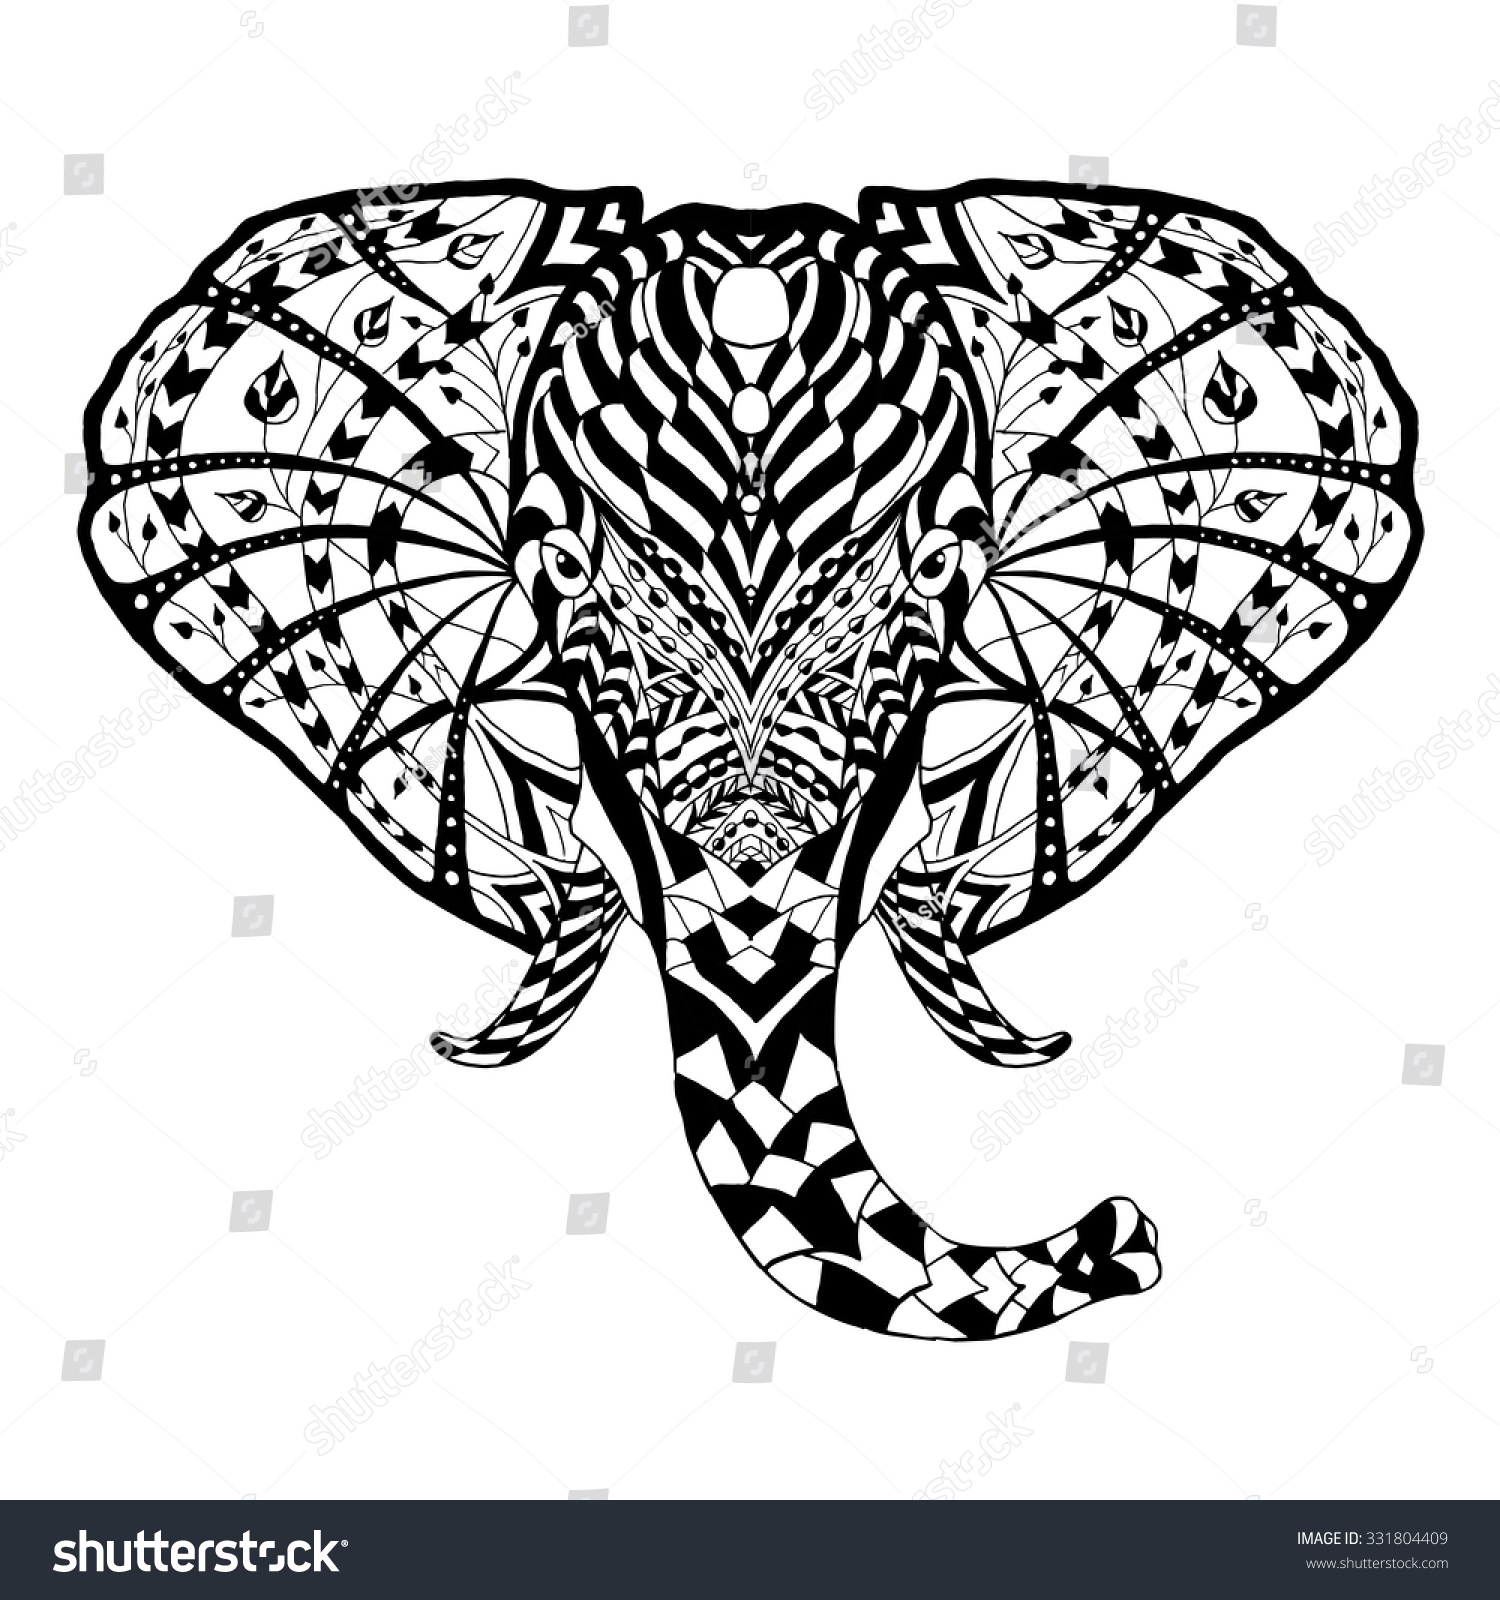 Royalty-free Elephant. Black and white hand drawn… #331804409 Stock ...